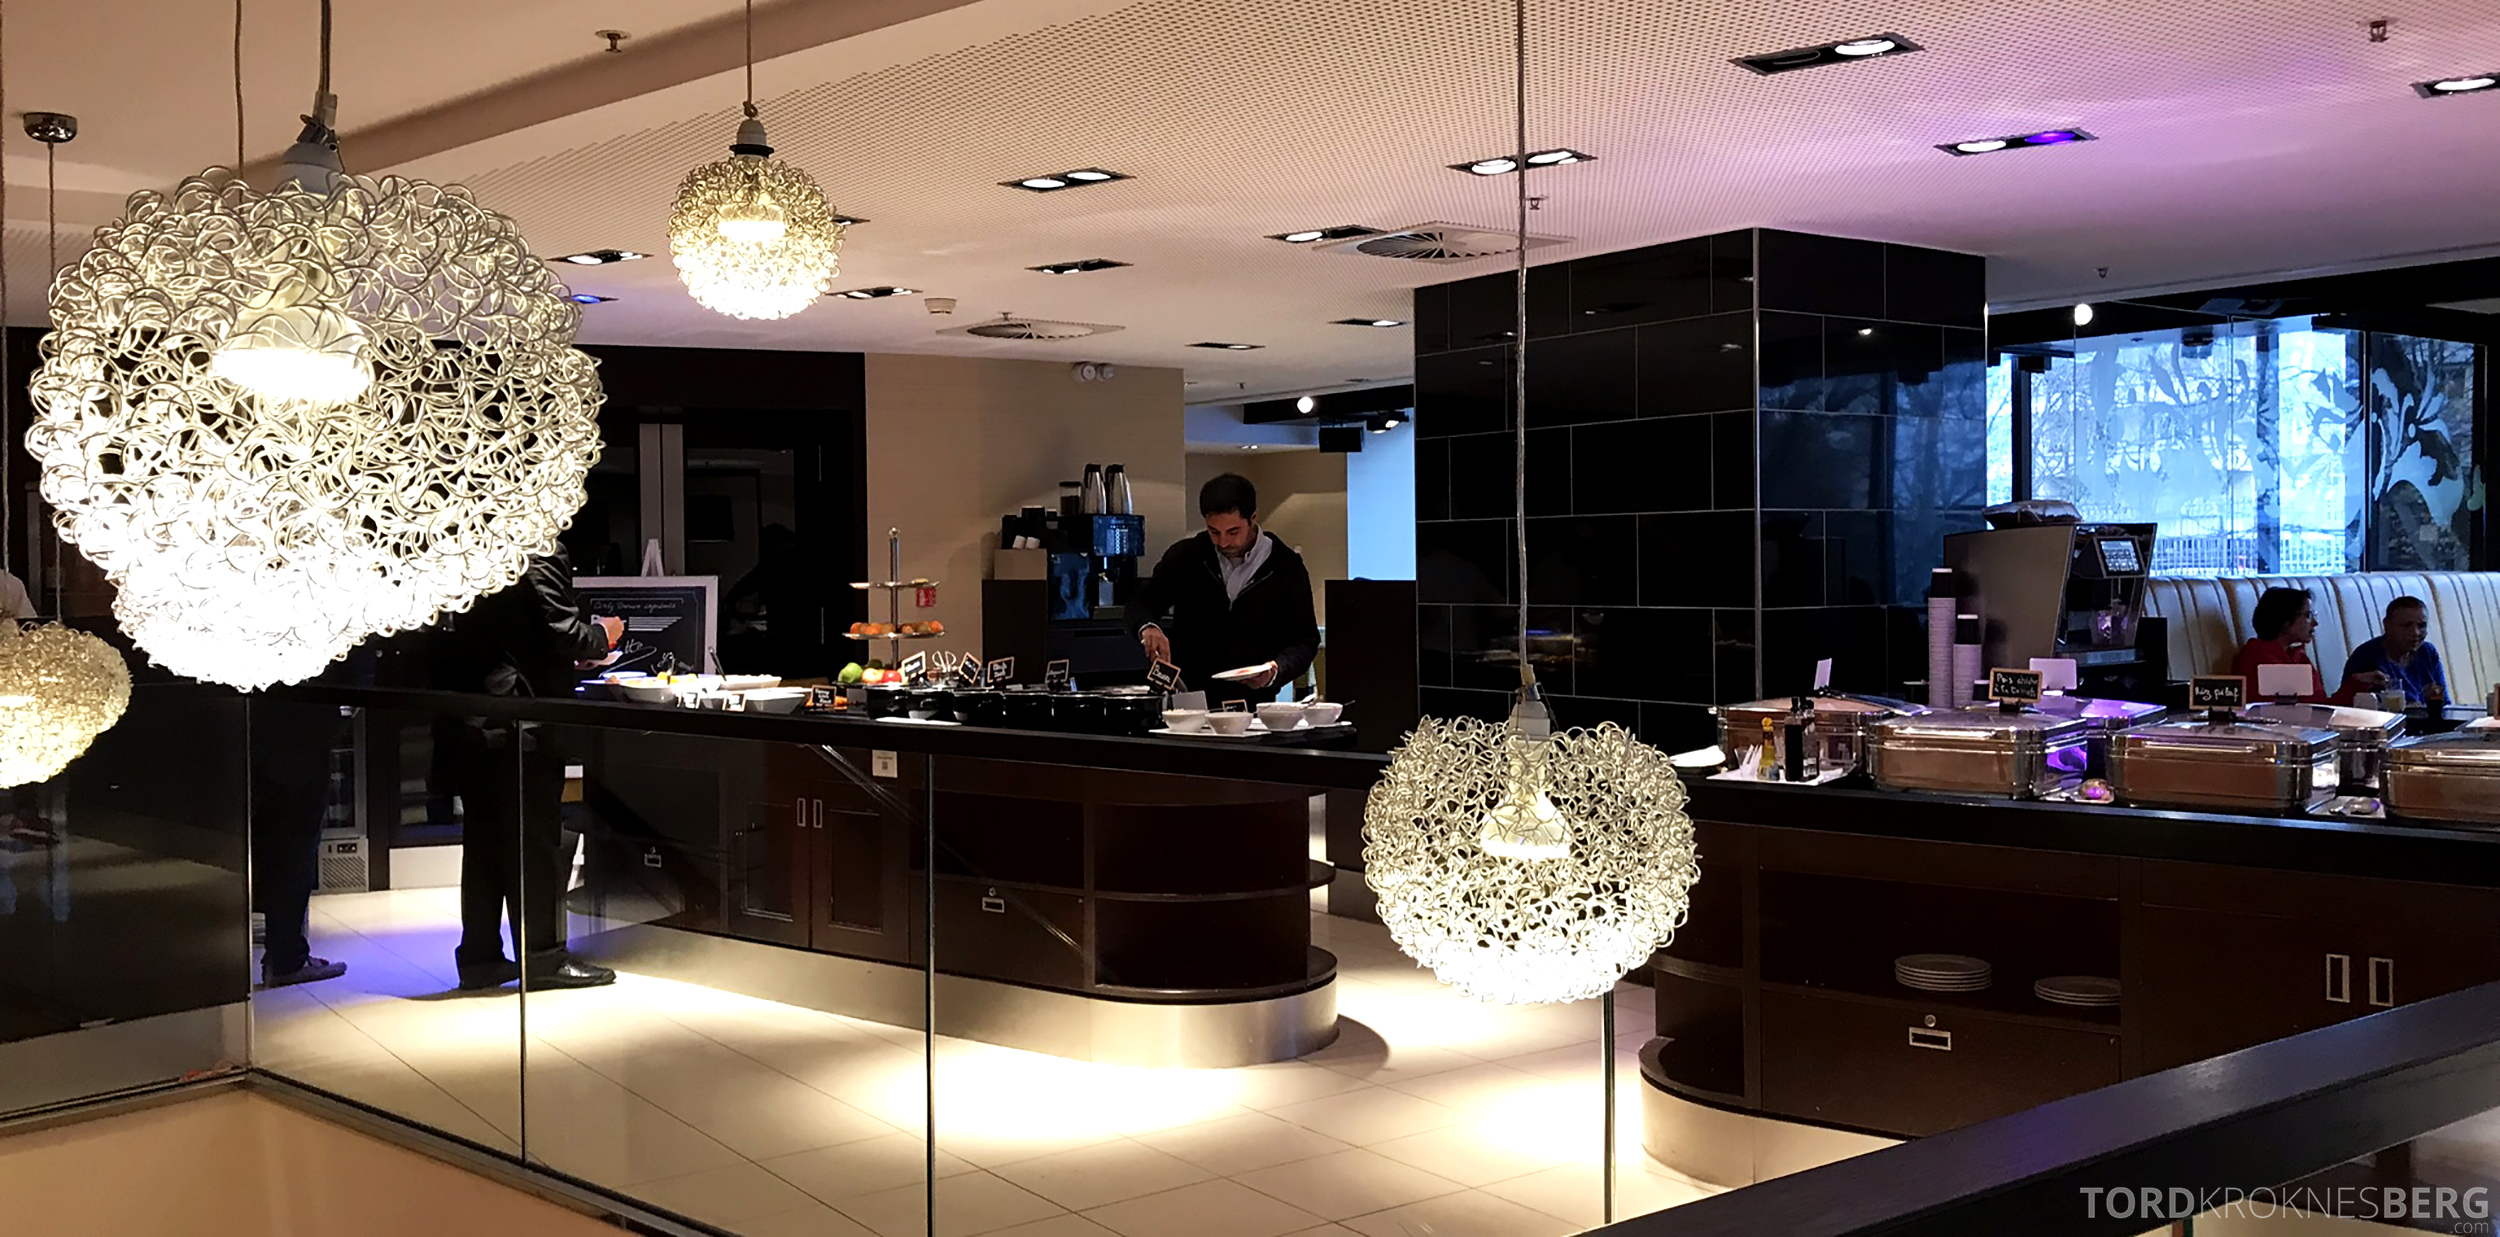 Marriott Paris Rive Gauche frokostbuffet